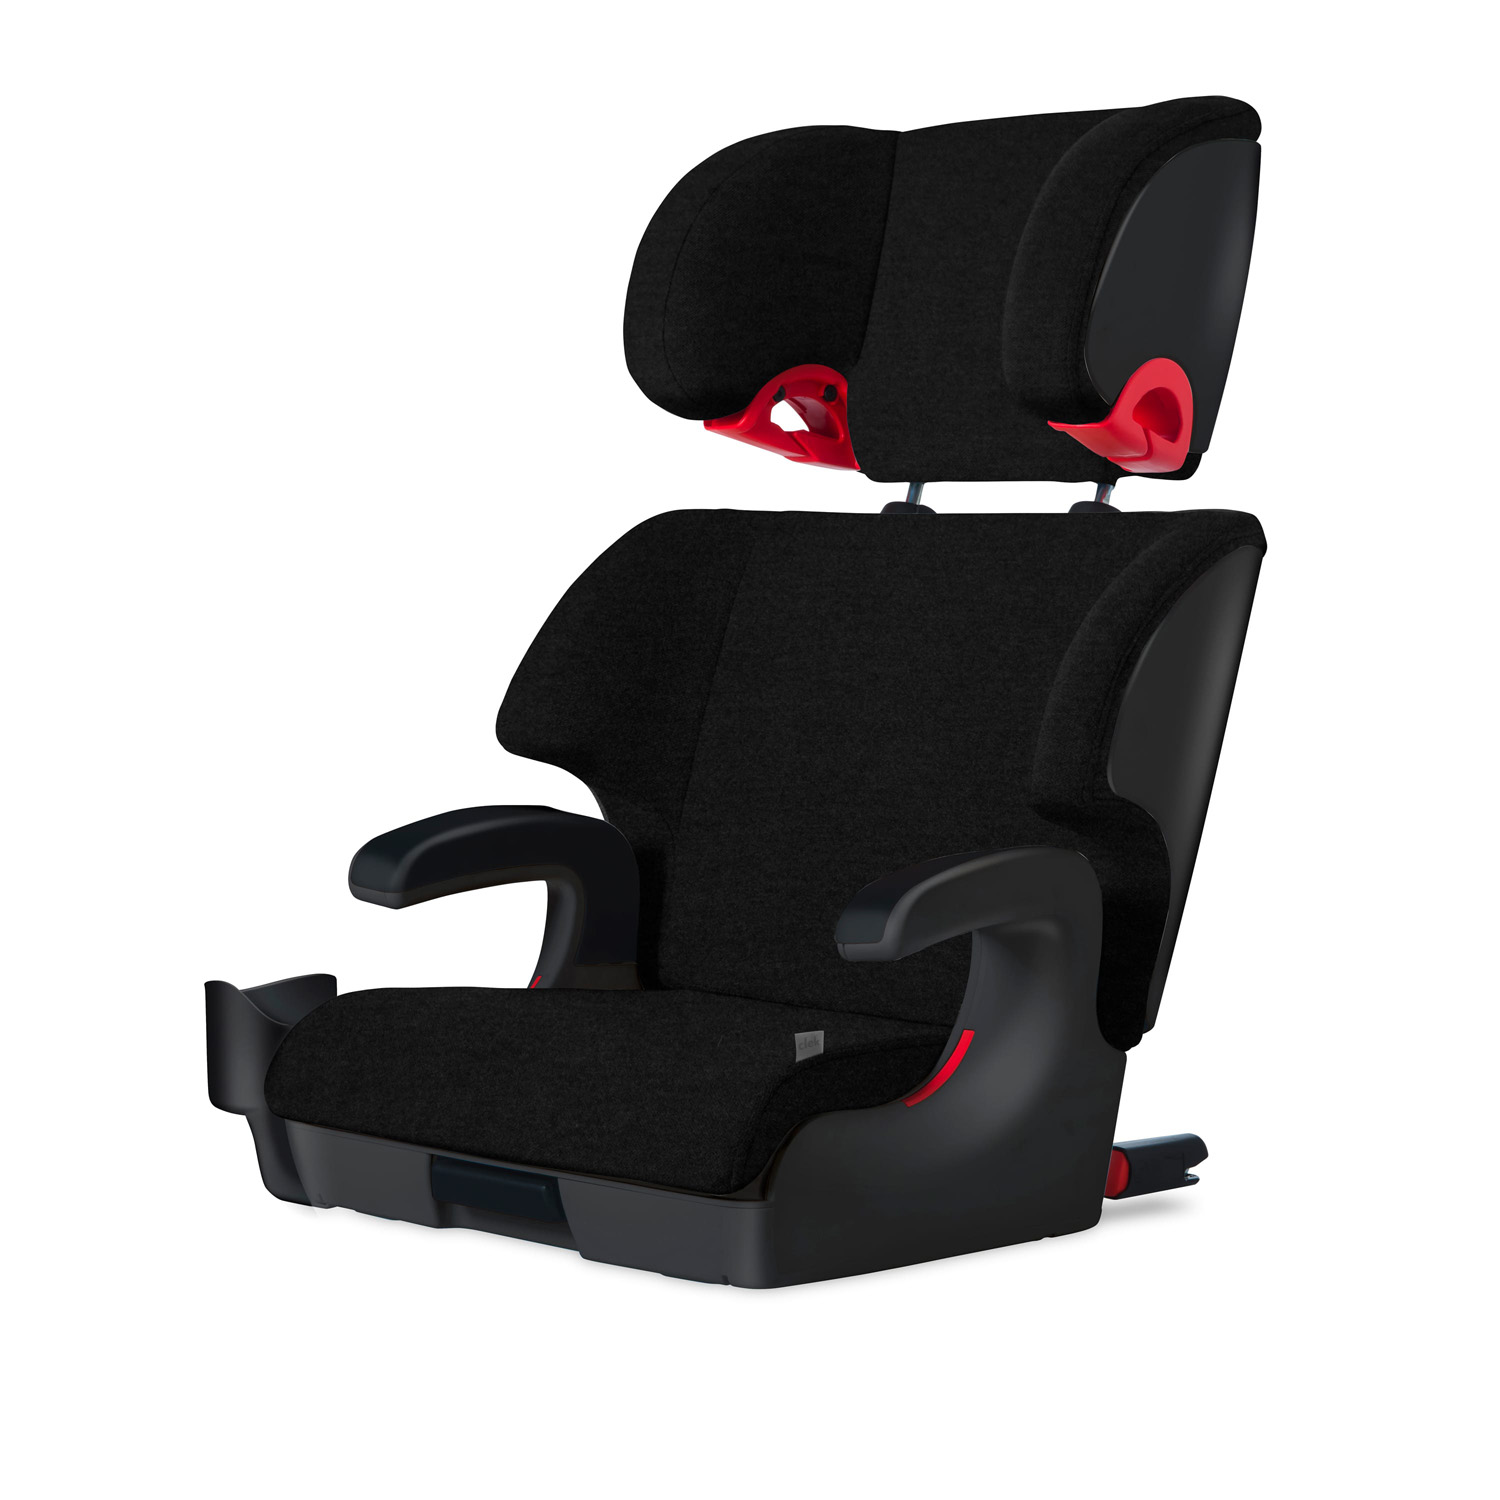 2020 Clek Oobr Booster Car Seat - Carbon Black